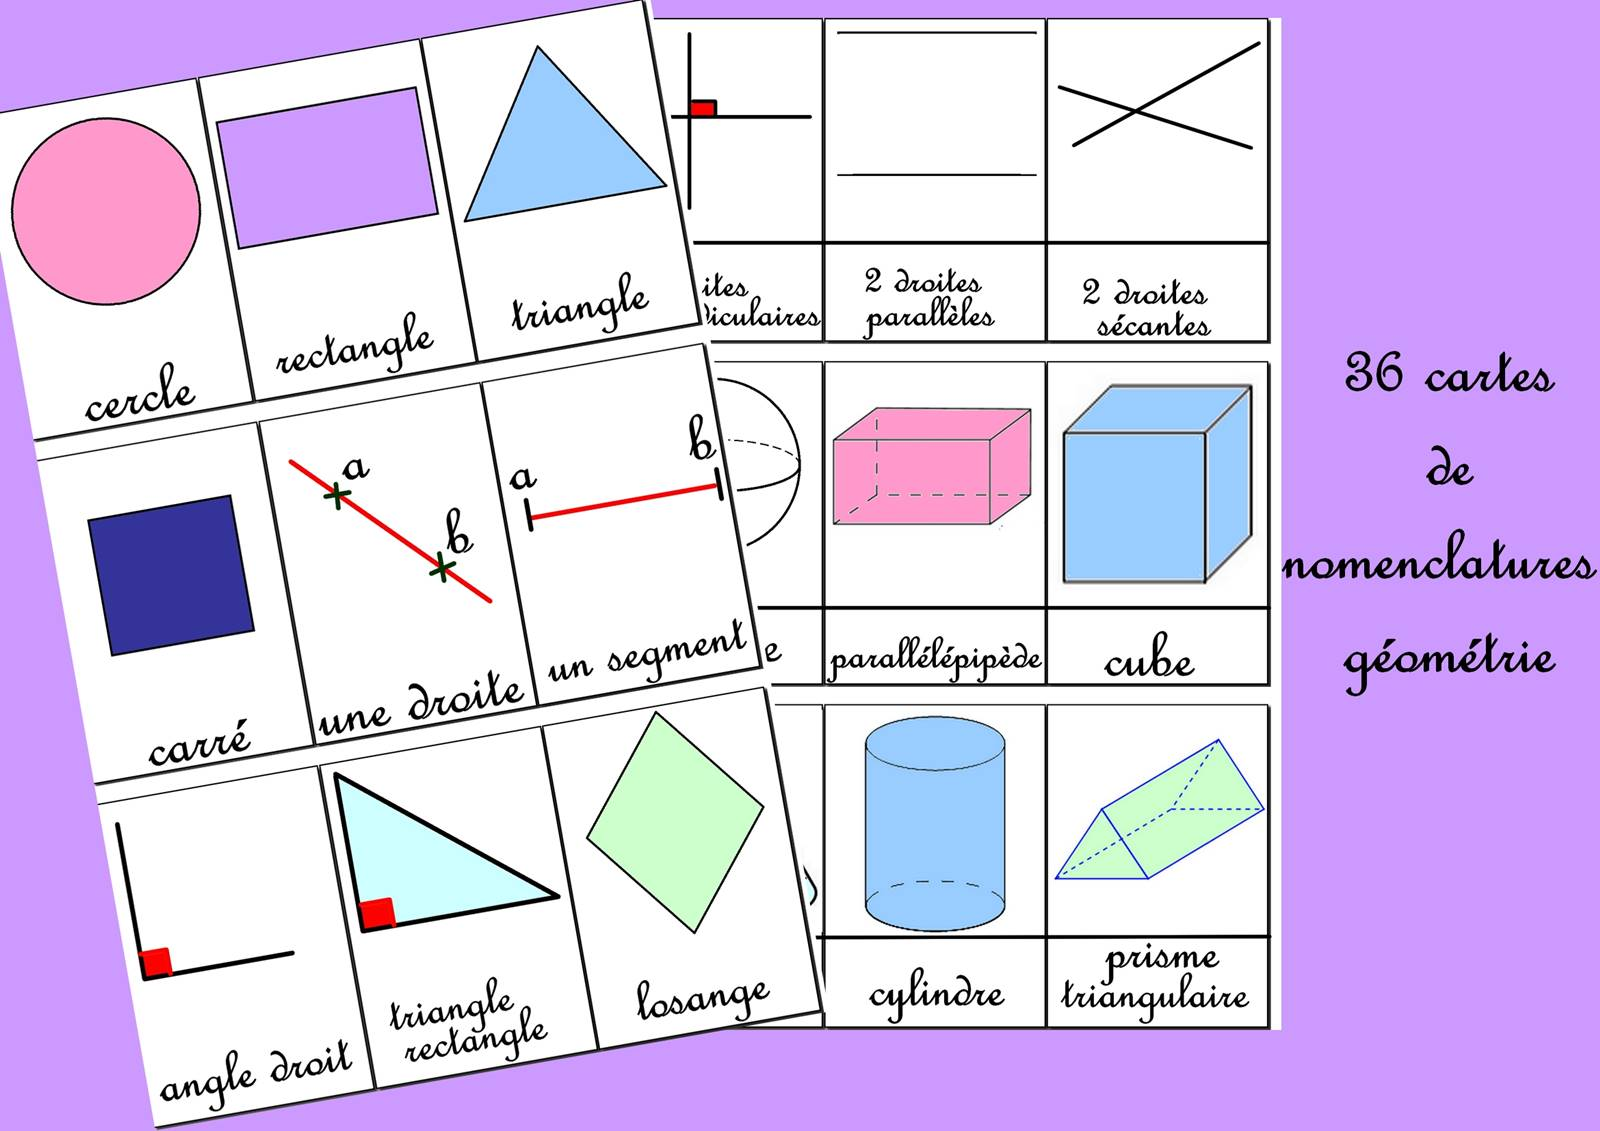 Blog 36 cartes de nomenclatures geometrie